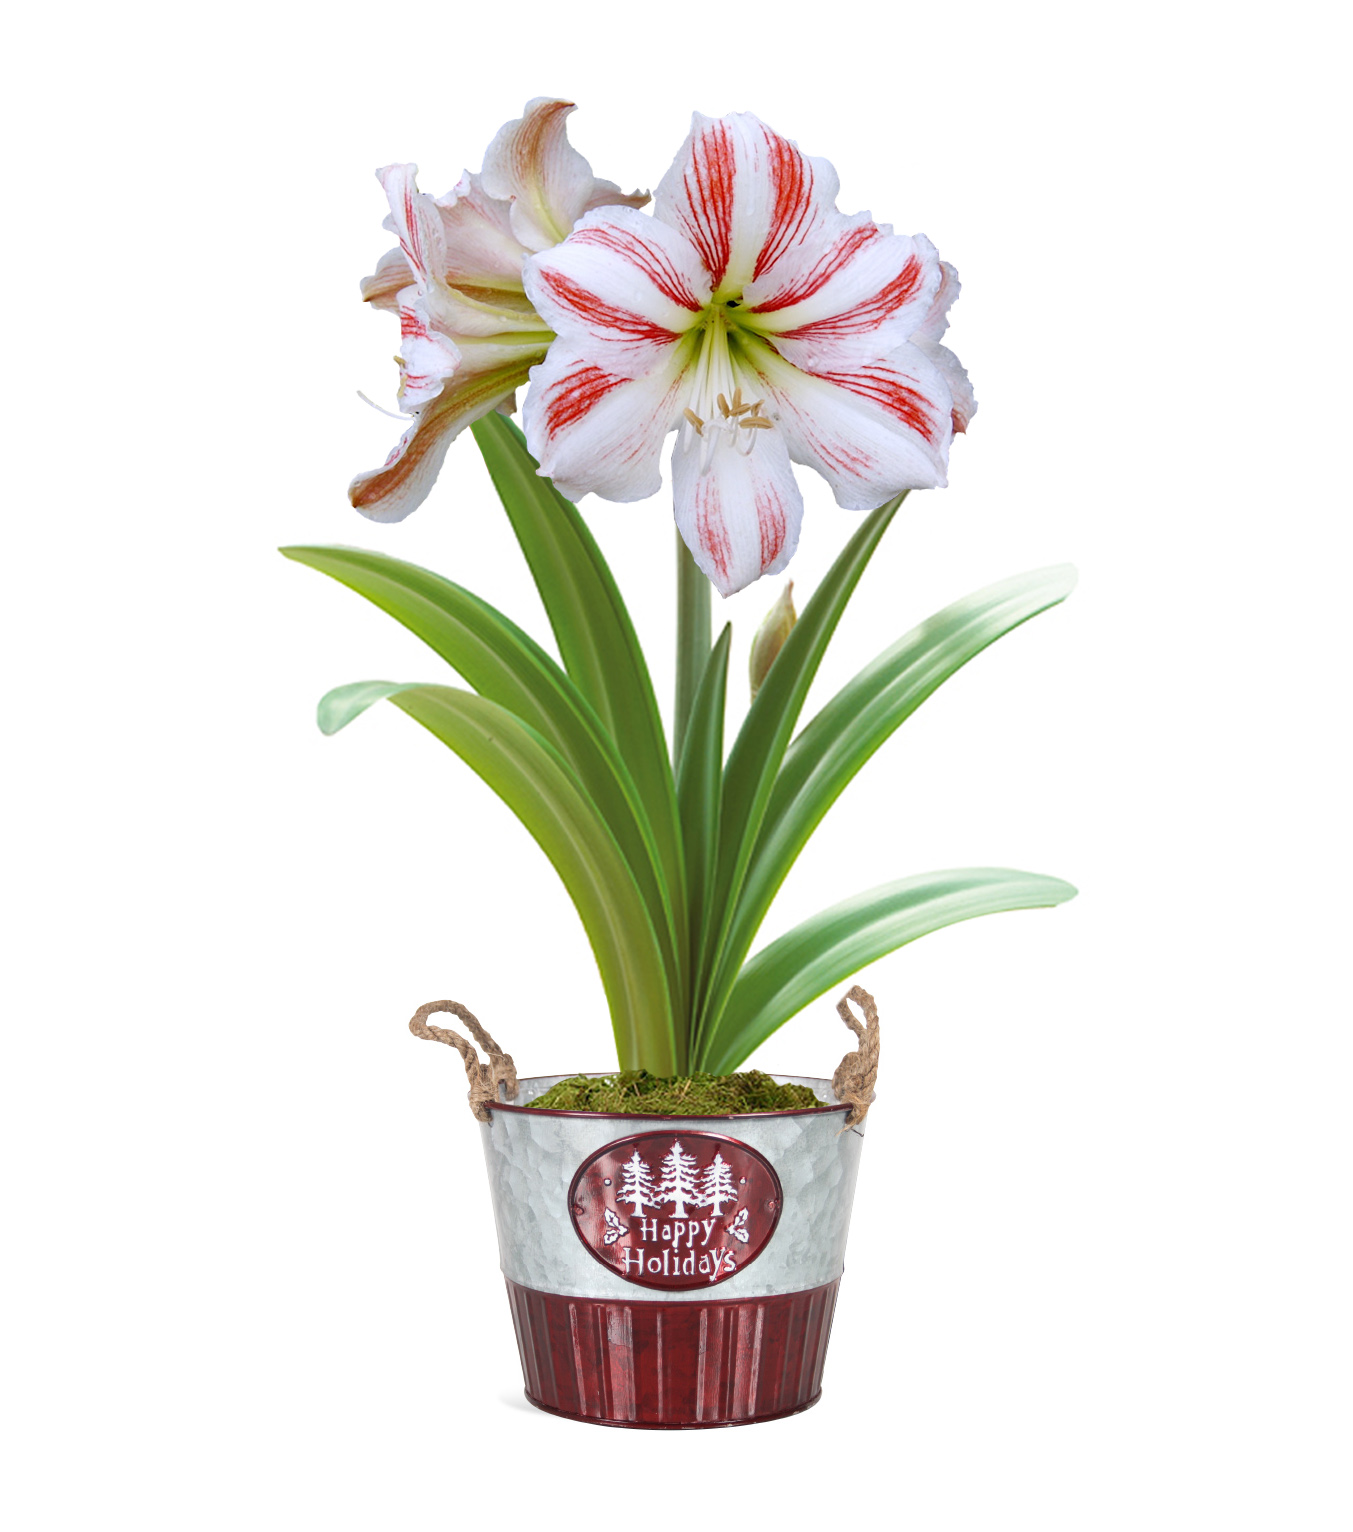 Amaryllis holiday pot gift kit 4 flower options flower for Pot amaryllis